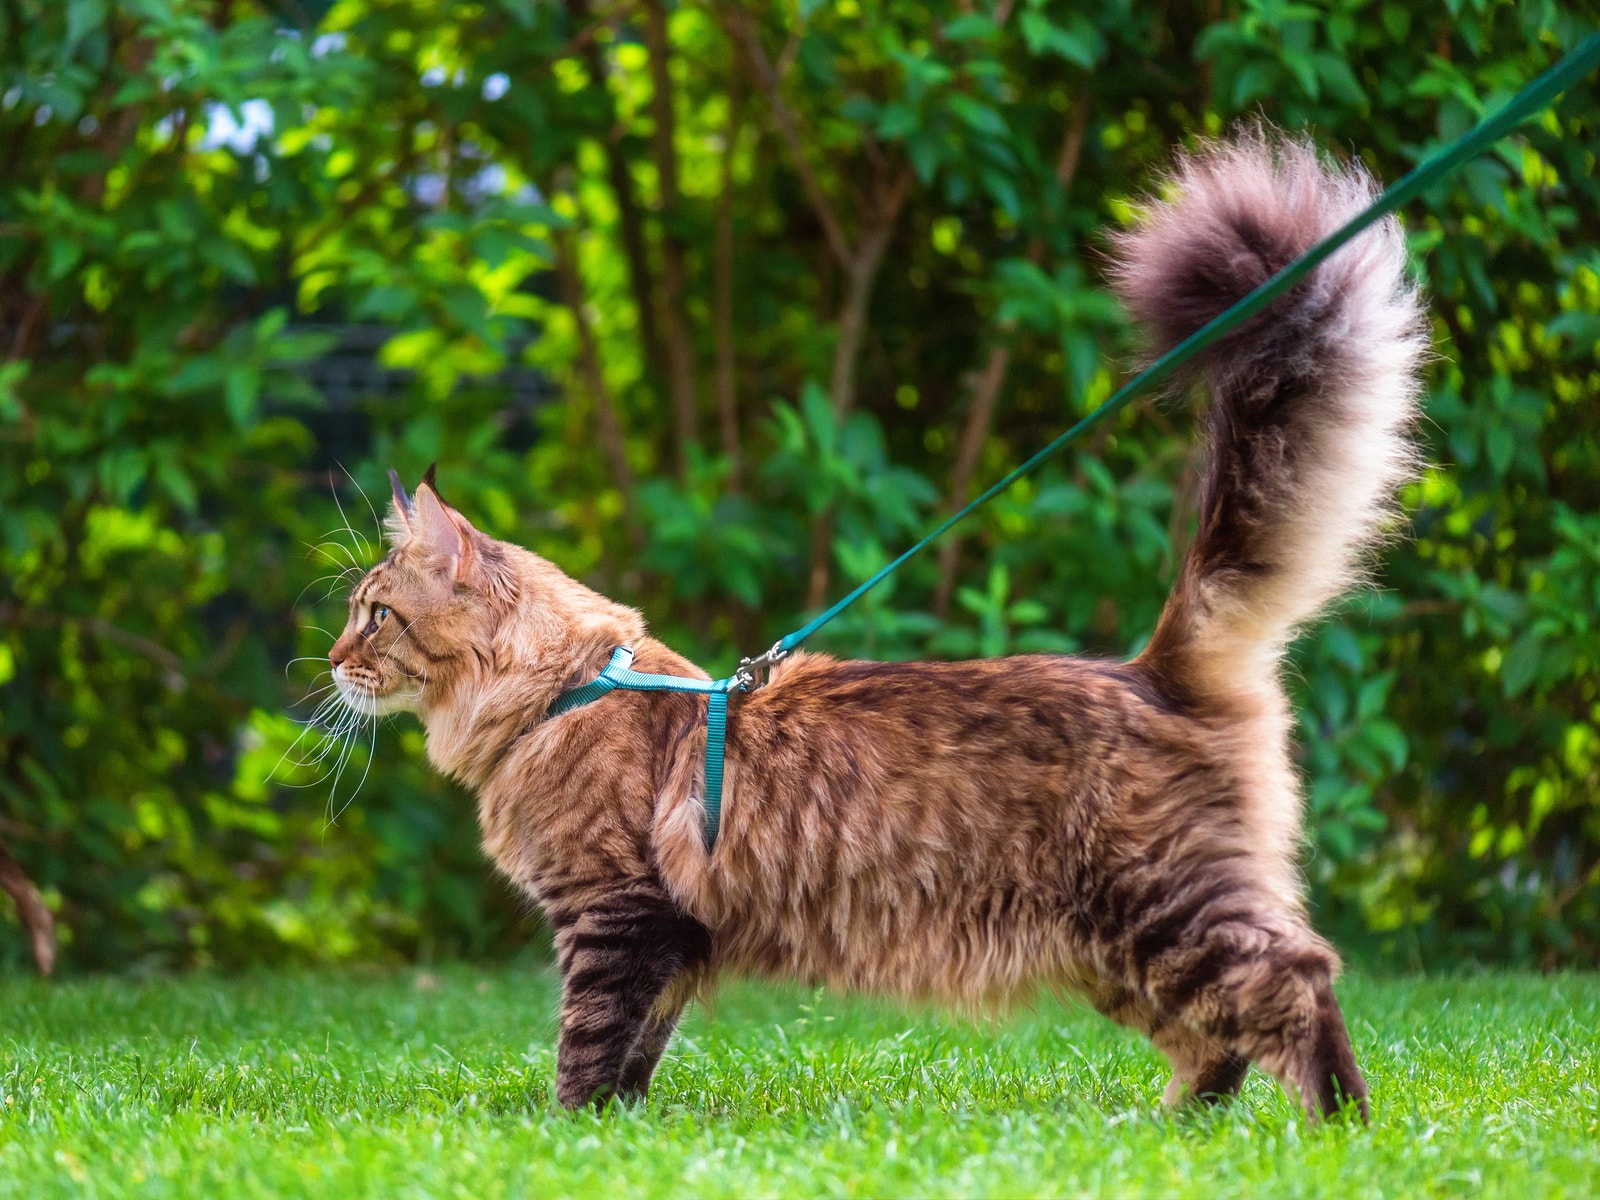 Maine Coon cat on a harness and leash outdoors in the grass.